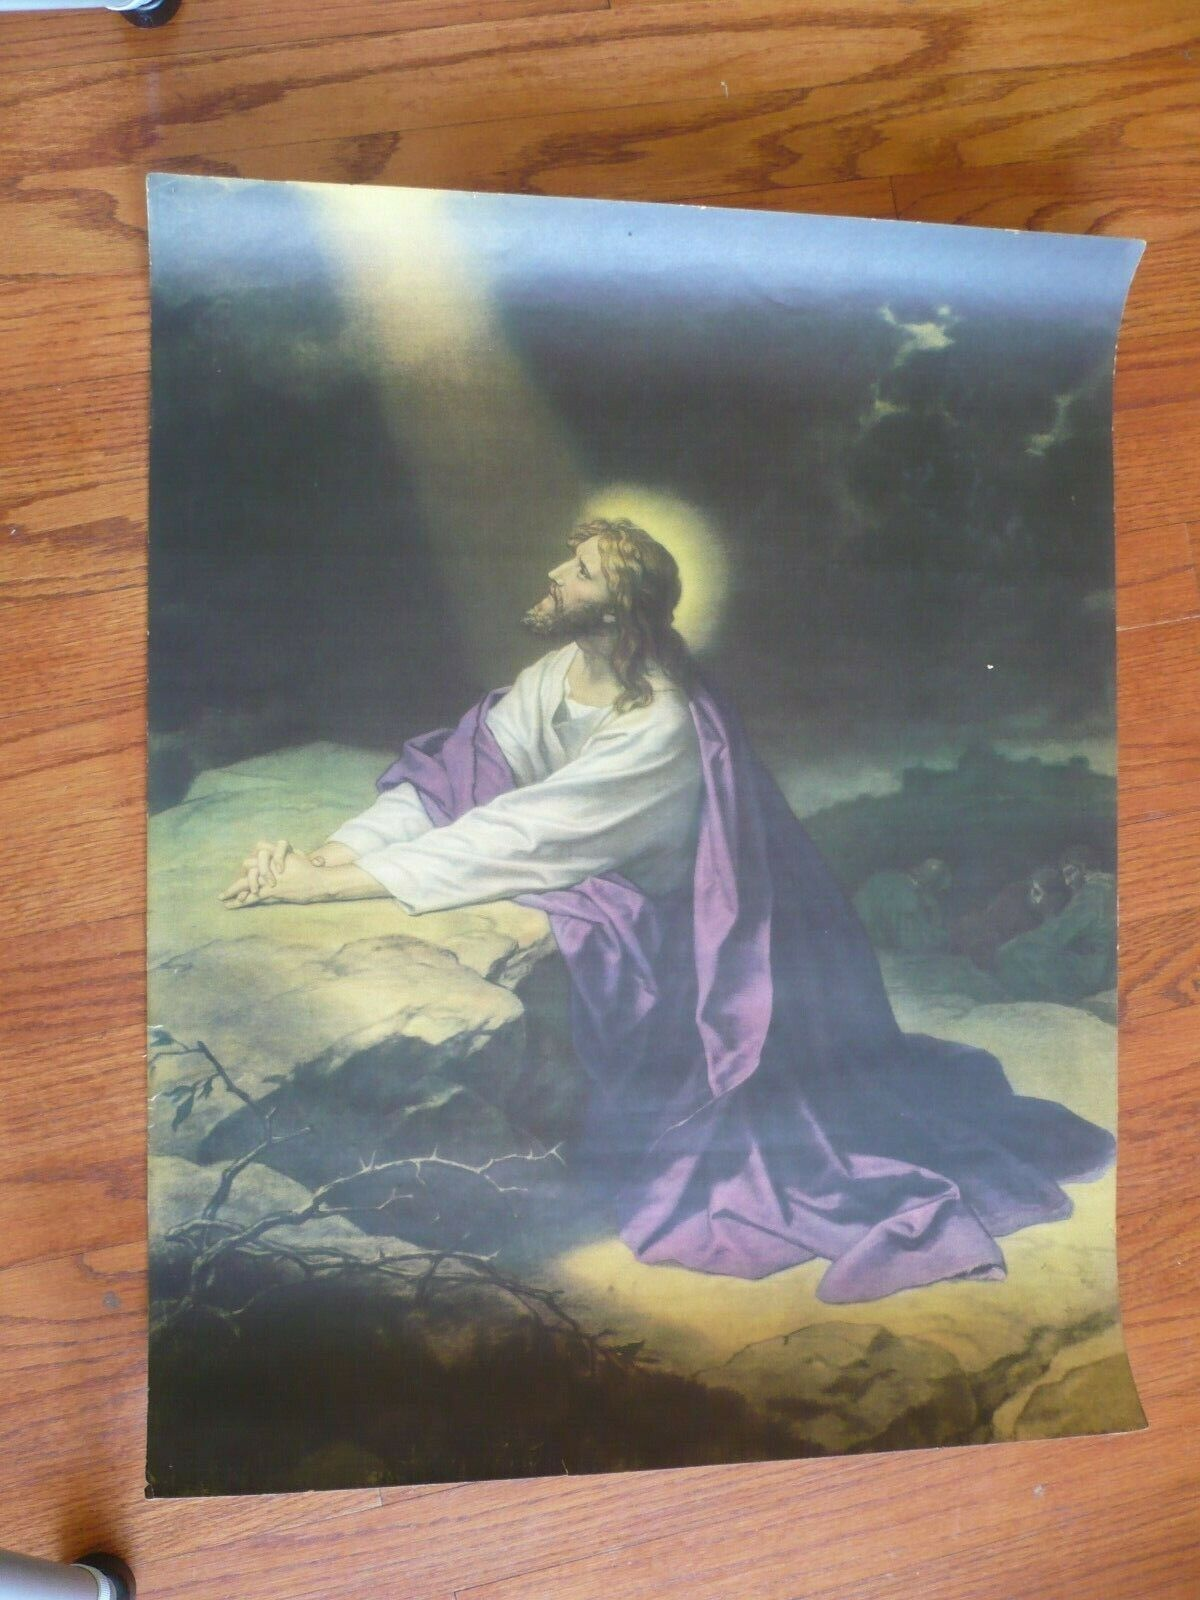 Jesus Praying To God The Father In Gethsemane By Heinrich Hofman 22 X 28 Inches - $50.00